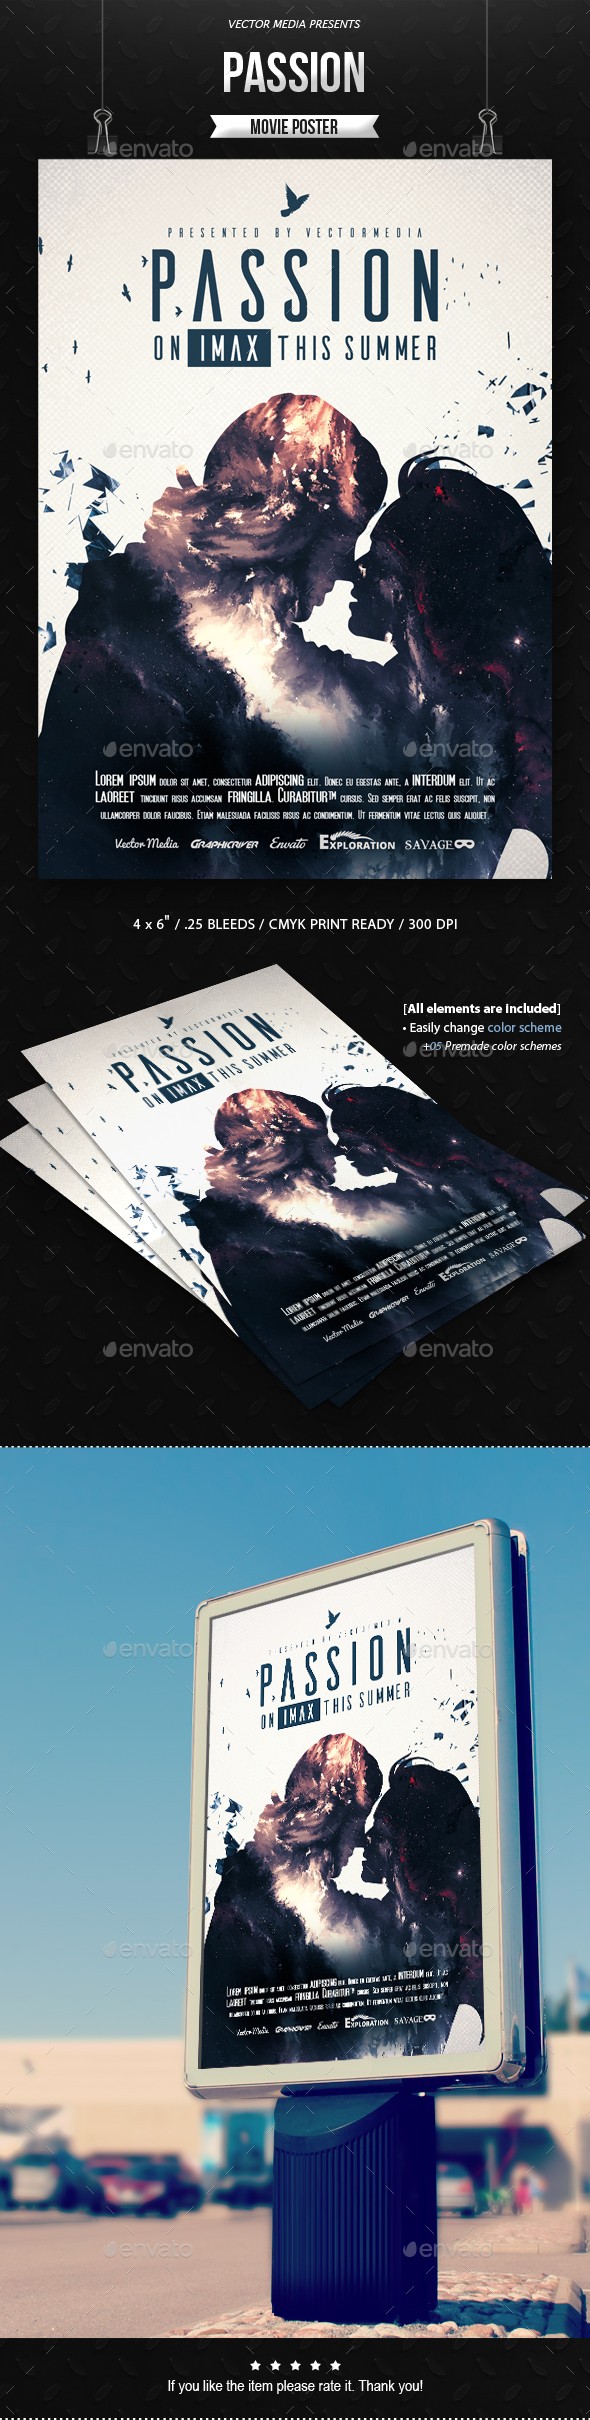 Passion - Movie Poster - Miscellaneous Events